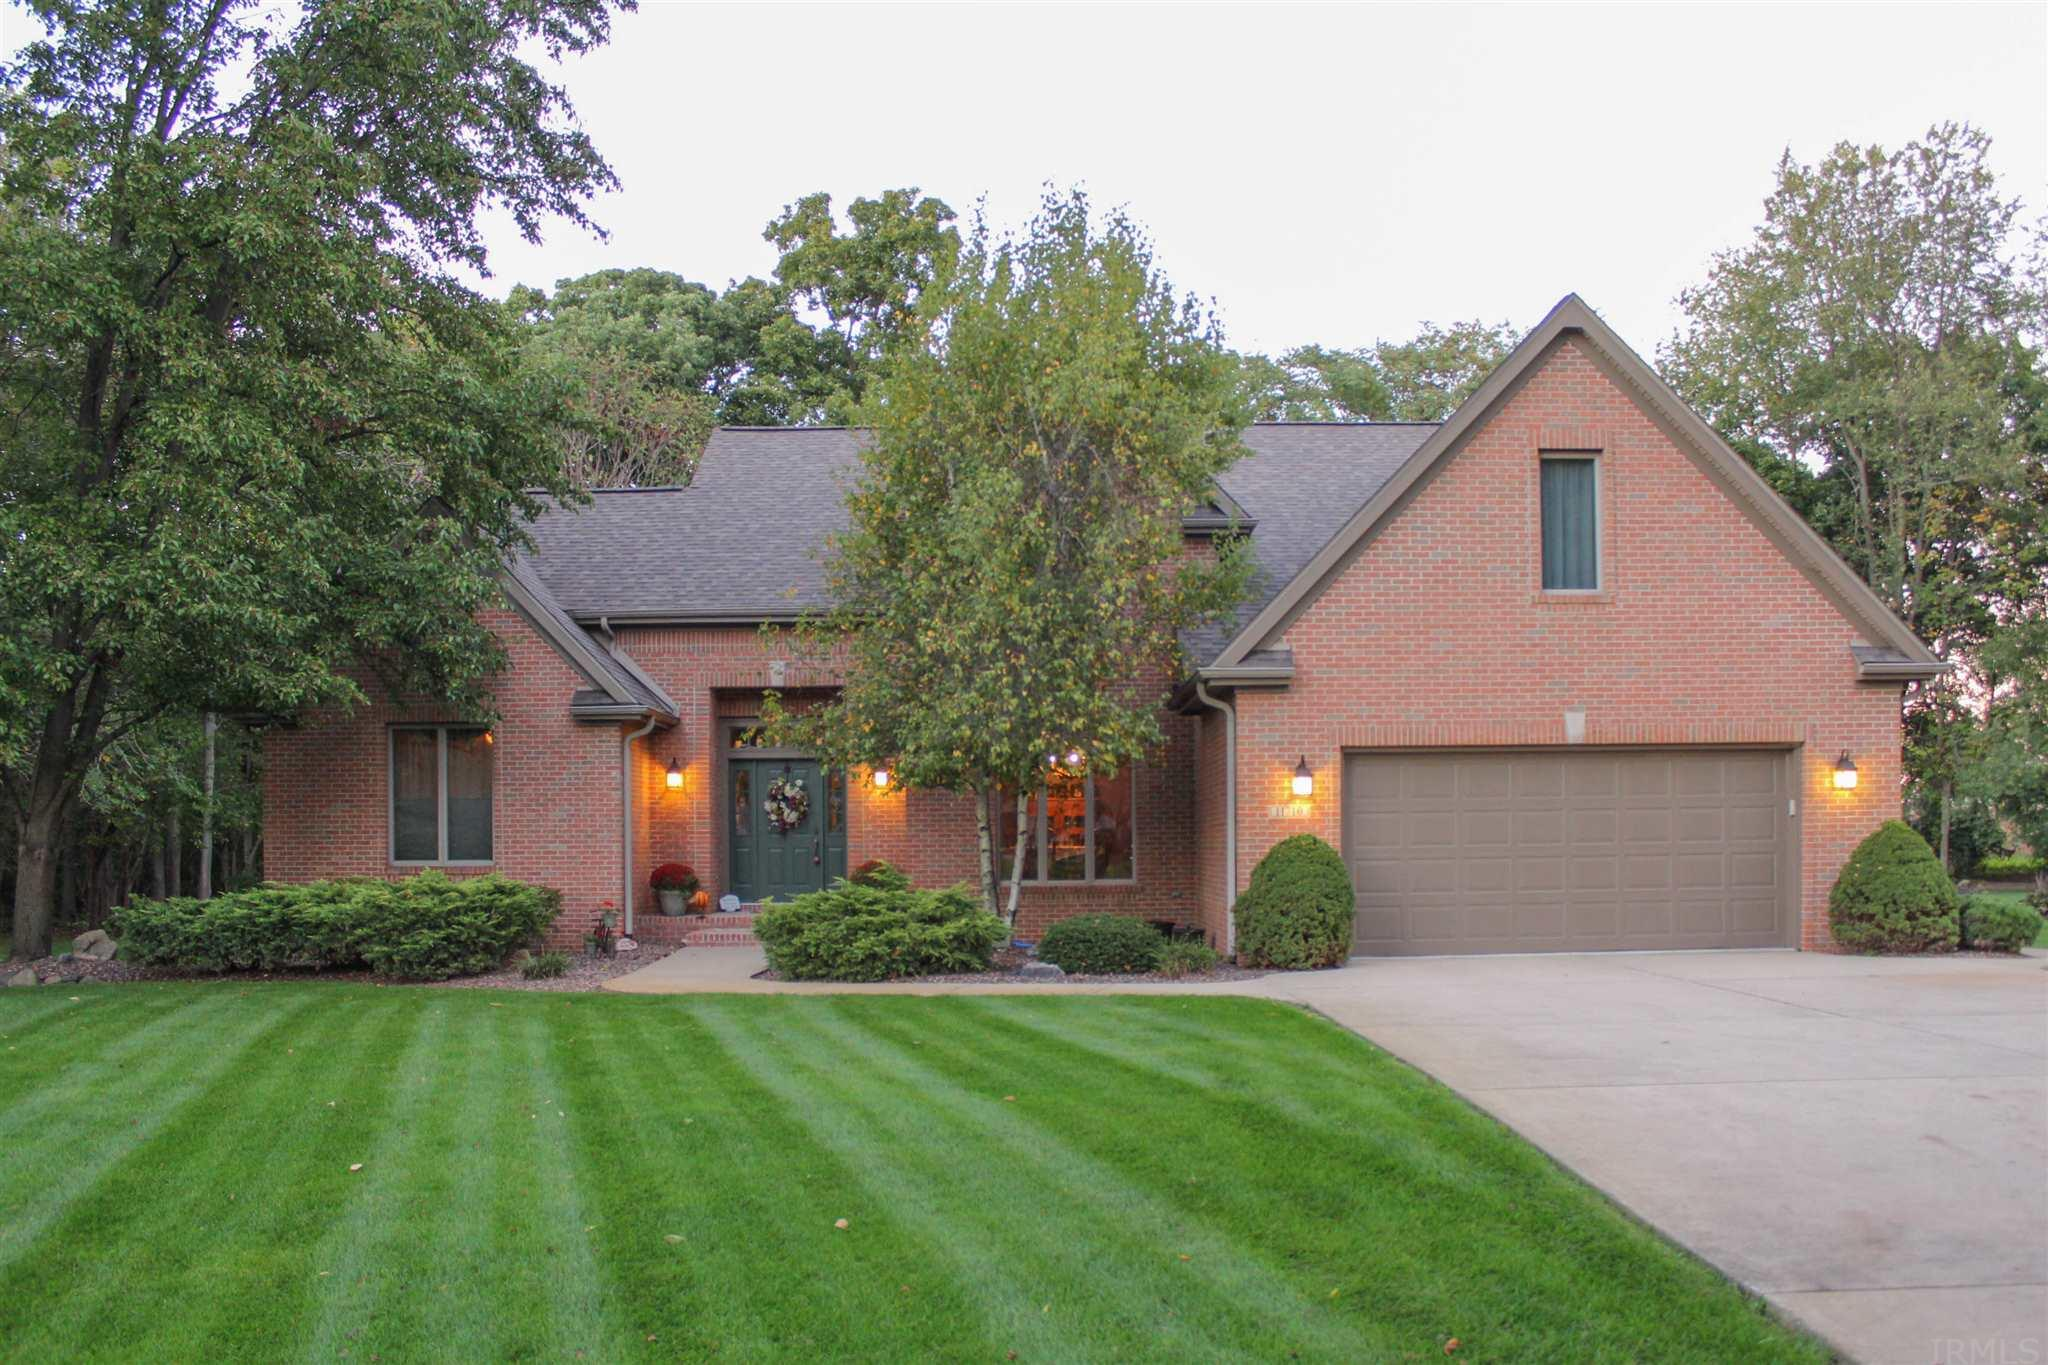 11710 W BRIARWOOD COURT, MONTICELLO, IN 47960